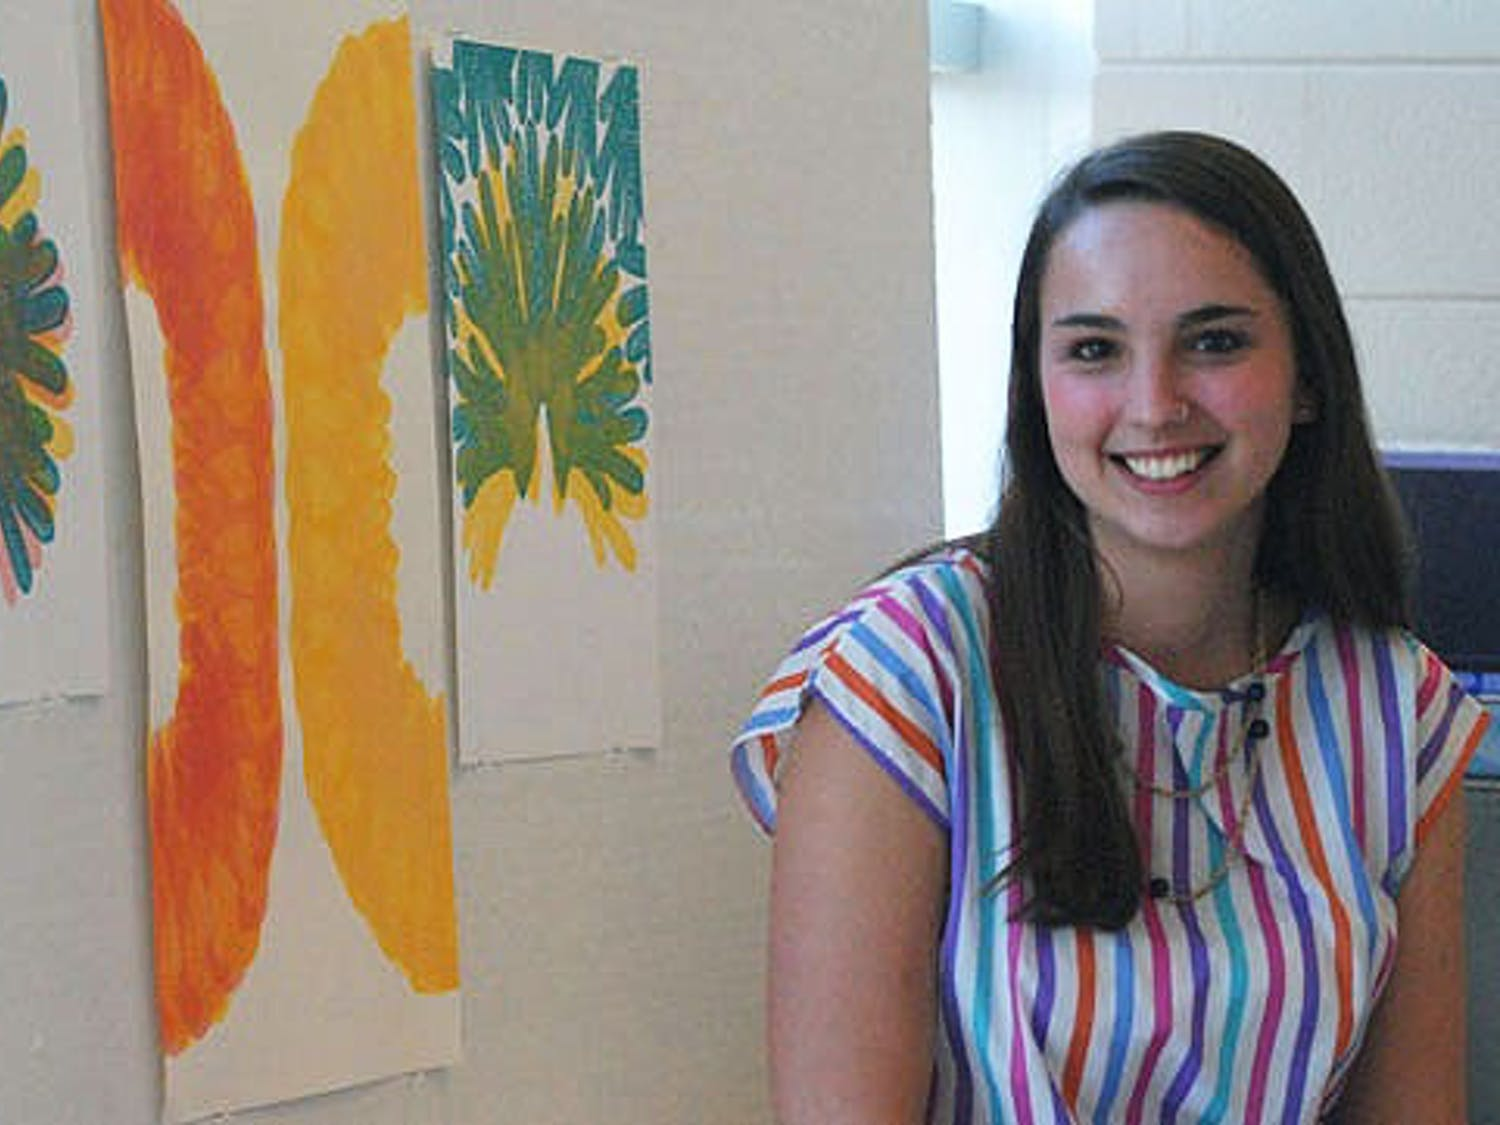 Kaitlin Knapp, Fine Art major with a focus in Art History, displays screen prints in Hanes Art Center. Ali Halperin shows her piece on materialism using screenshots from the program Hoarders.